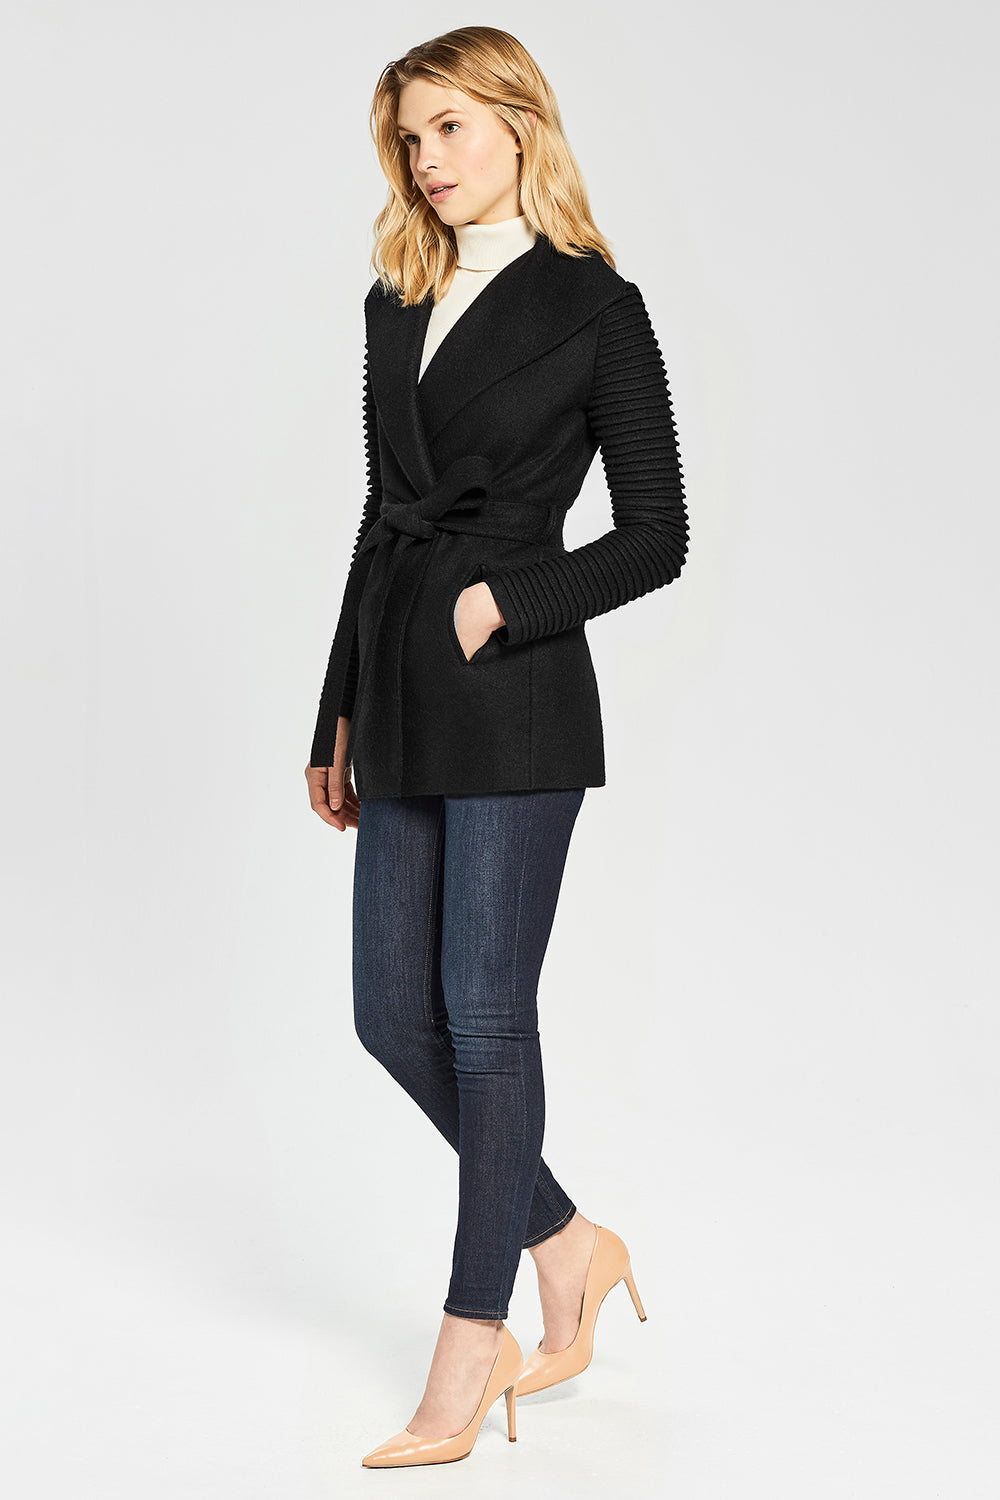 Sentaler Wrap Coat with Ribbed Sleeves featured in Superfine Alpaca and available in Black. Seen from Side.